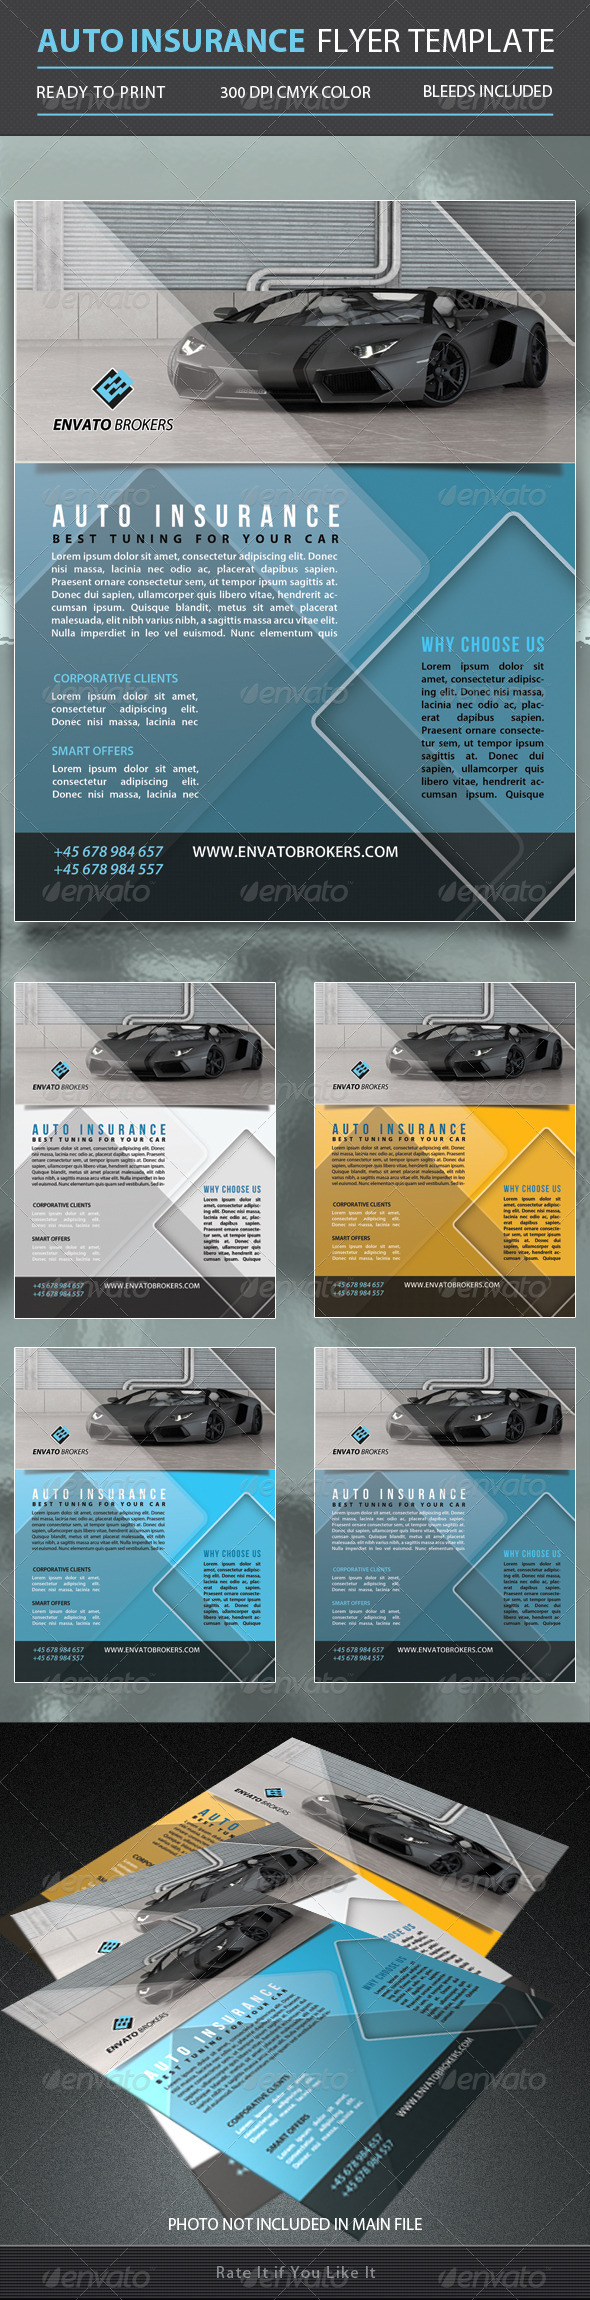 GraphicRiver Auto Insurance Flyer Template 5350762